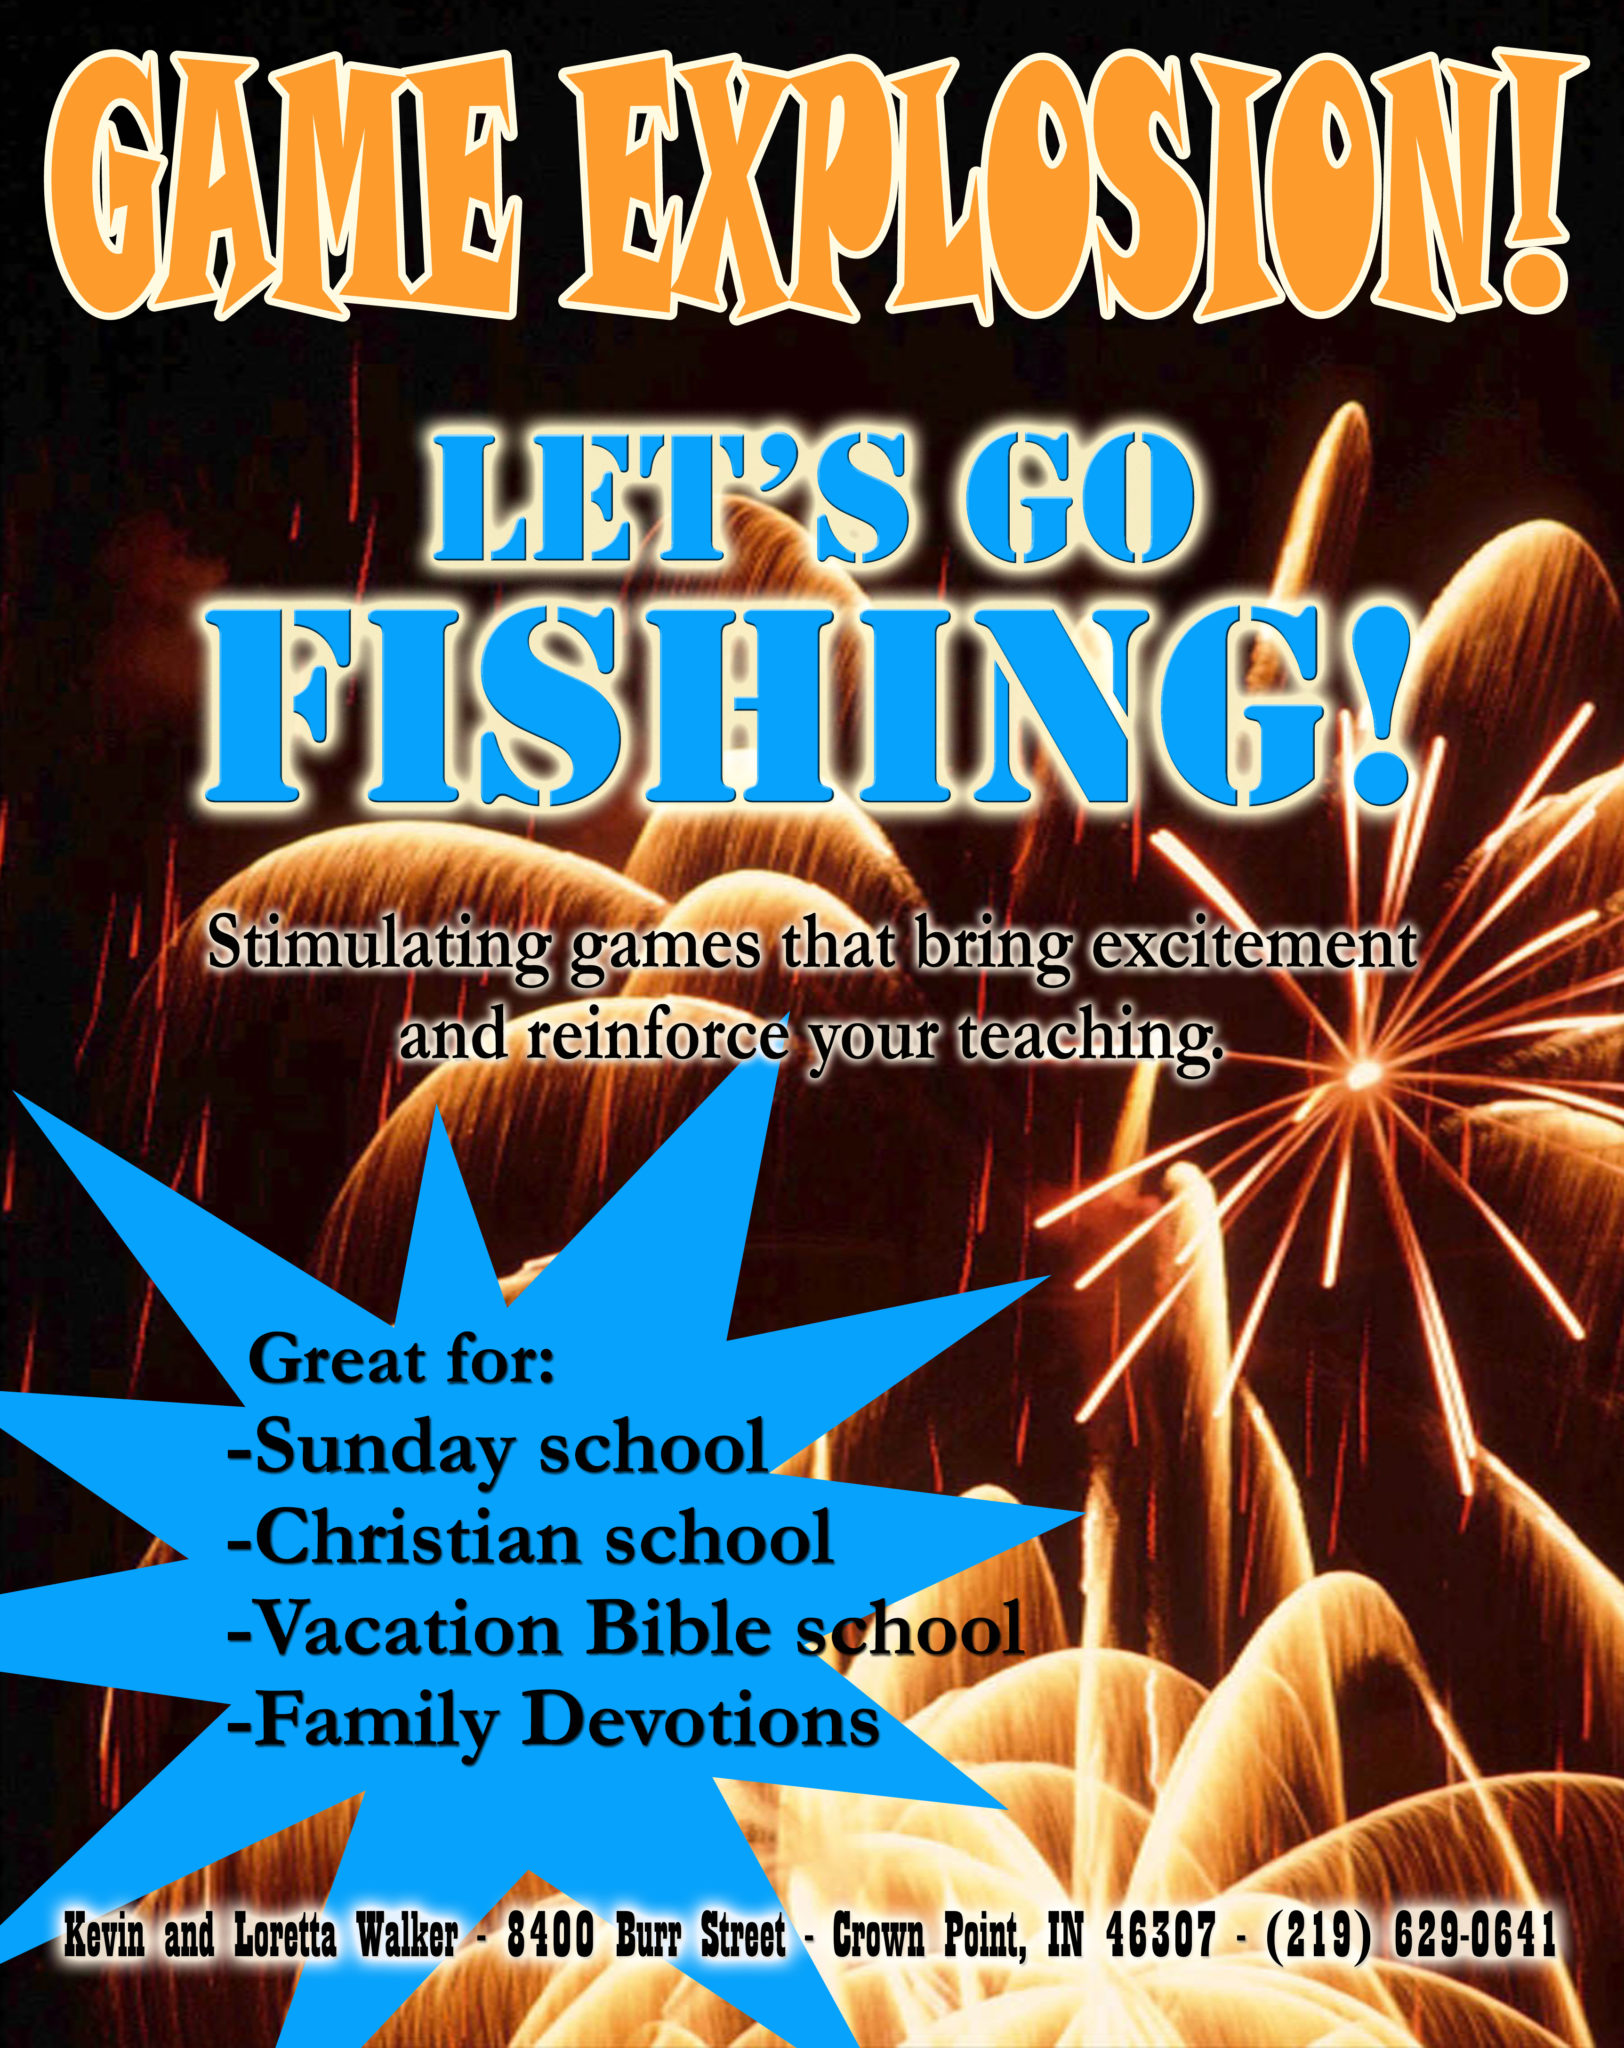 lets go fishing 24 people interested rated 50 by 3 people check out who is attending exhibiting speaking schedule & agenda reviews timing entry ticket fees 2018 edition of lets go fishing show will be held at gateway center, collinsville starting on 05th january it is a 3 day event.